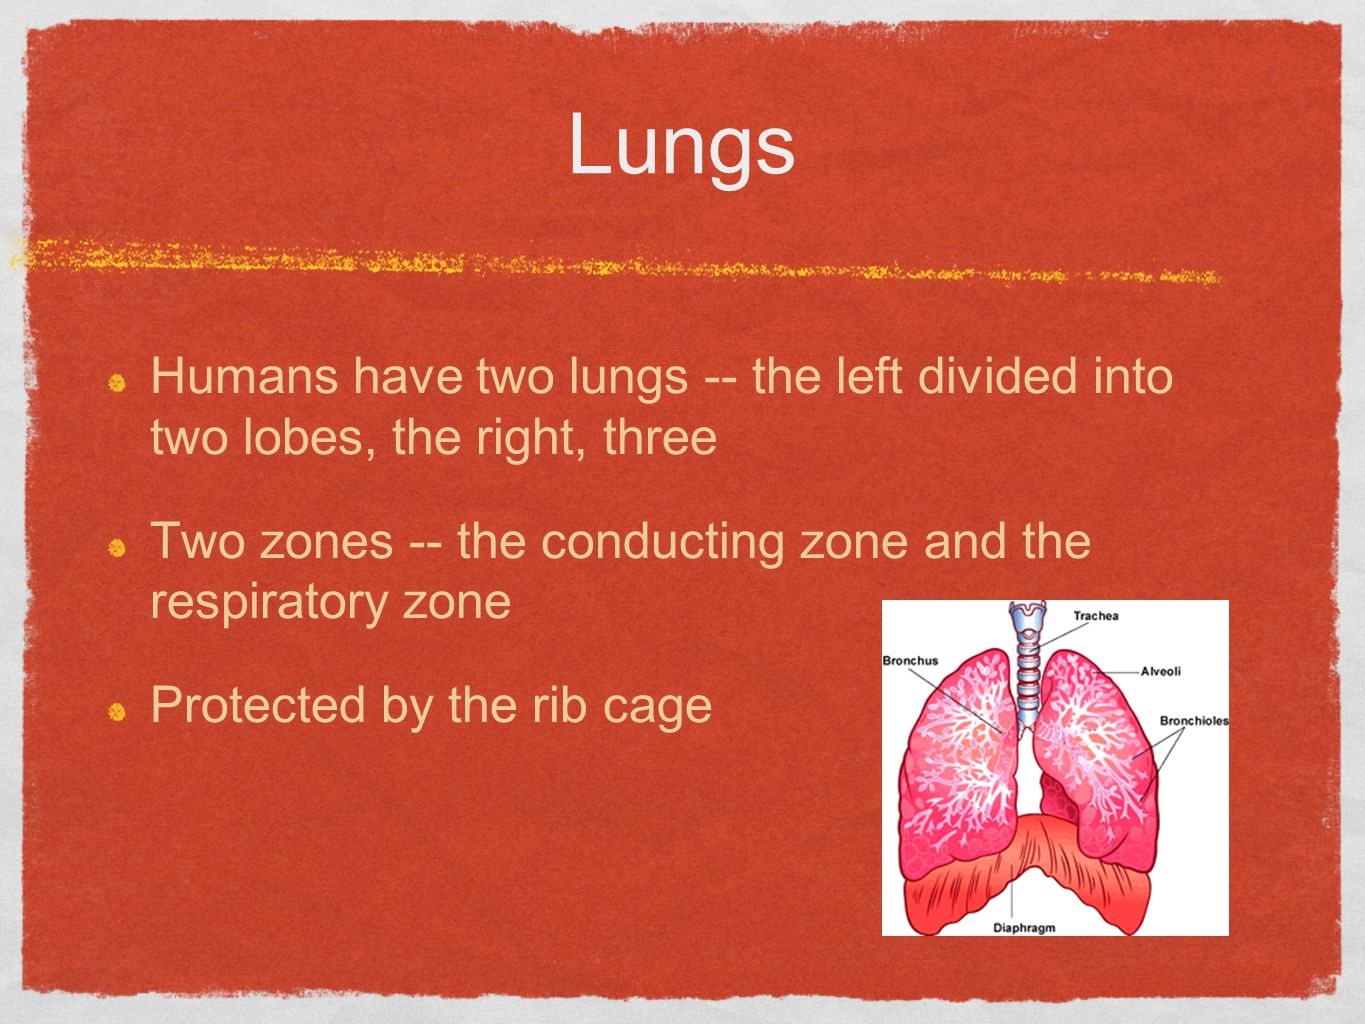 Lungs Humans have two lungs -- the left divided into two lobes, the right, three. Two zones -- the conducting zone and the respiratory zone.